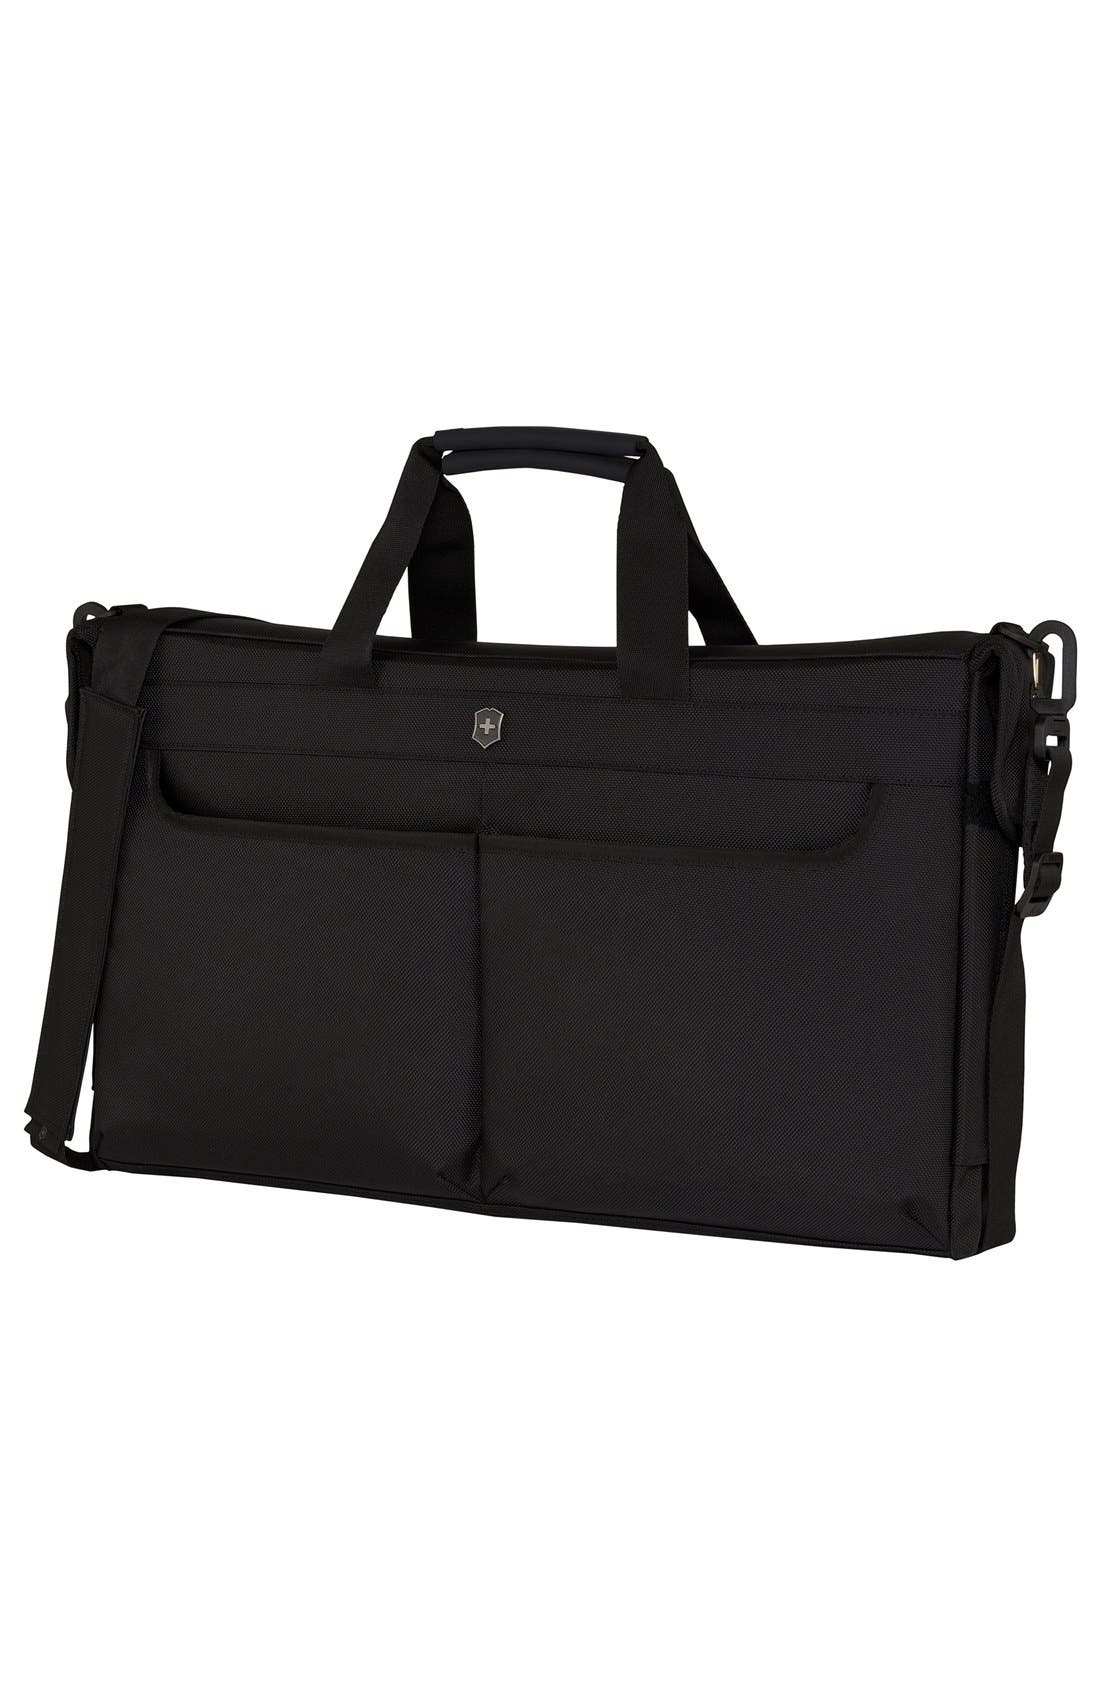 WT 5.0 - Porter Garment Bag,                             Main thumbnail 1, color,                             001